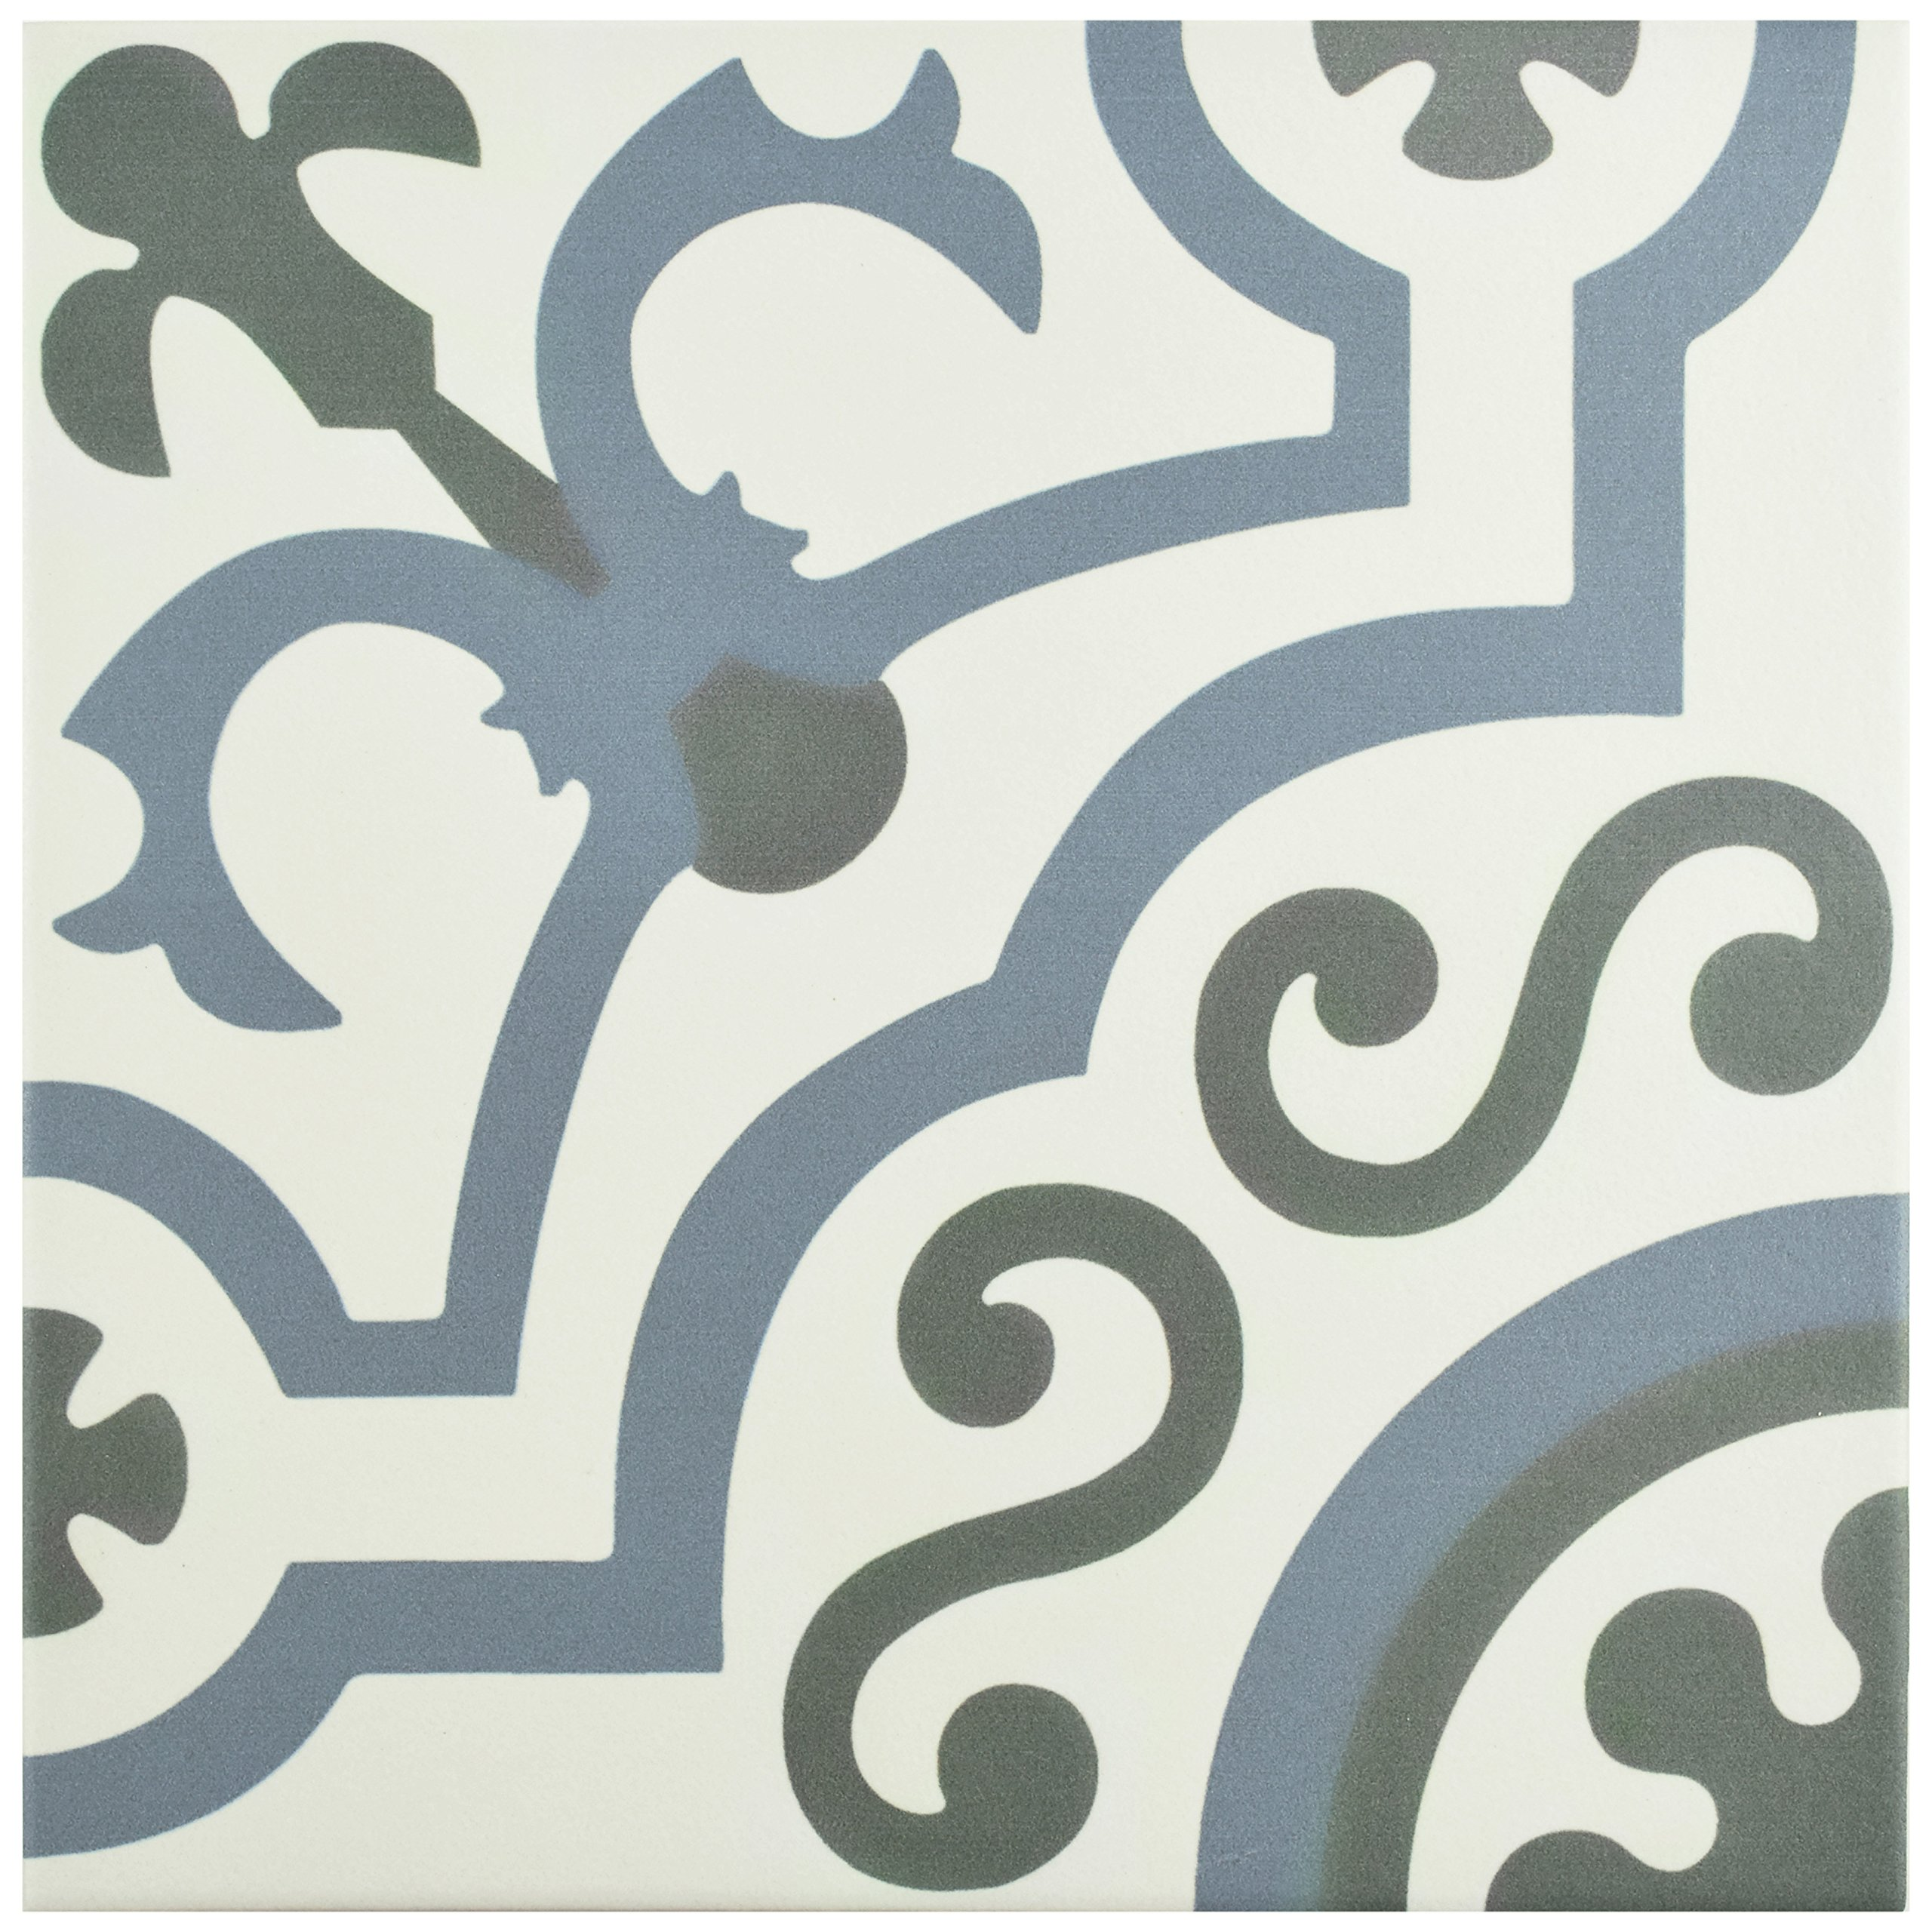 SomerTile FCD10HDU Hydro Ducados Porcelain Floor and Wall Tile, 9.75'' x 9.75'', White/Blue/Grey